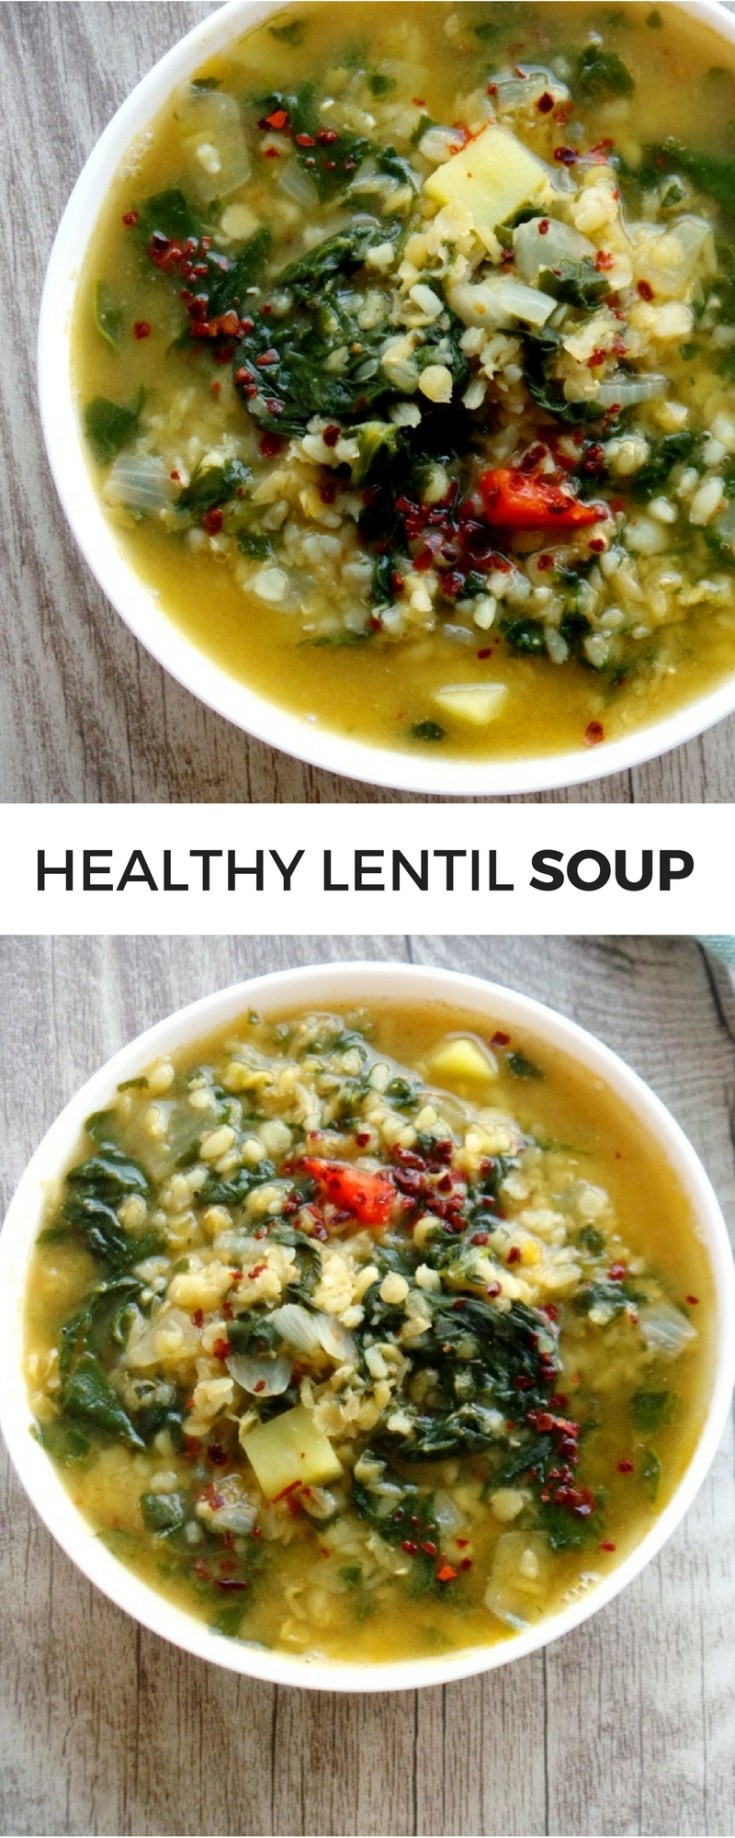 Easy healthy soup with lentils, bulgur and spinach! This easy vegan lentil soup recipe is simple and will keep you warm and healthy all winter long!